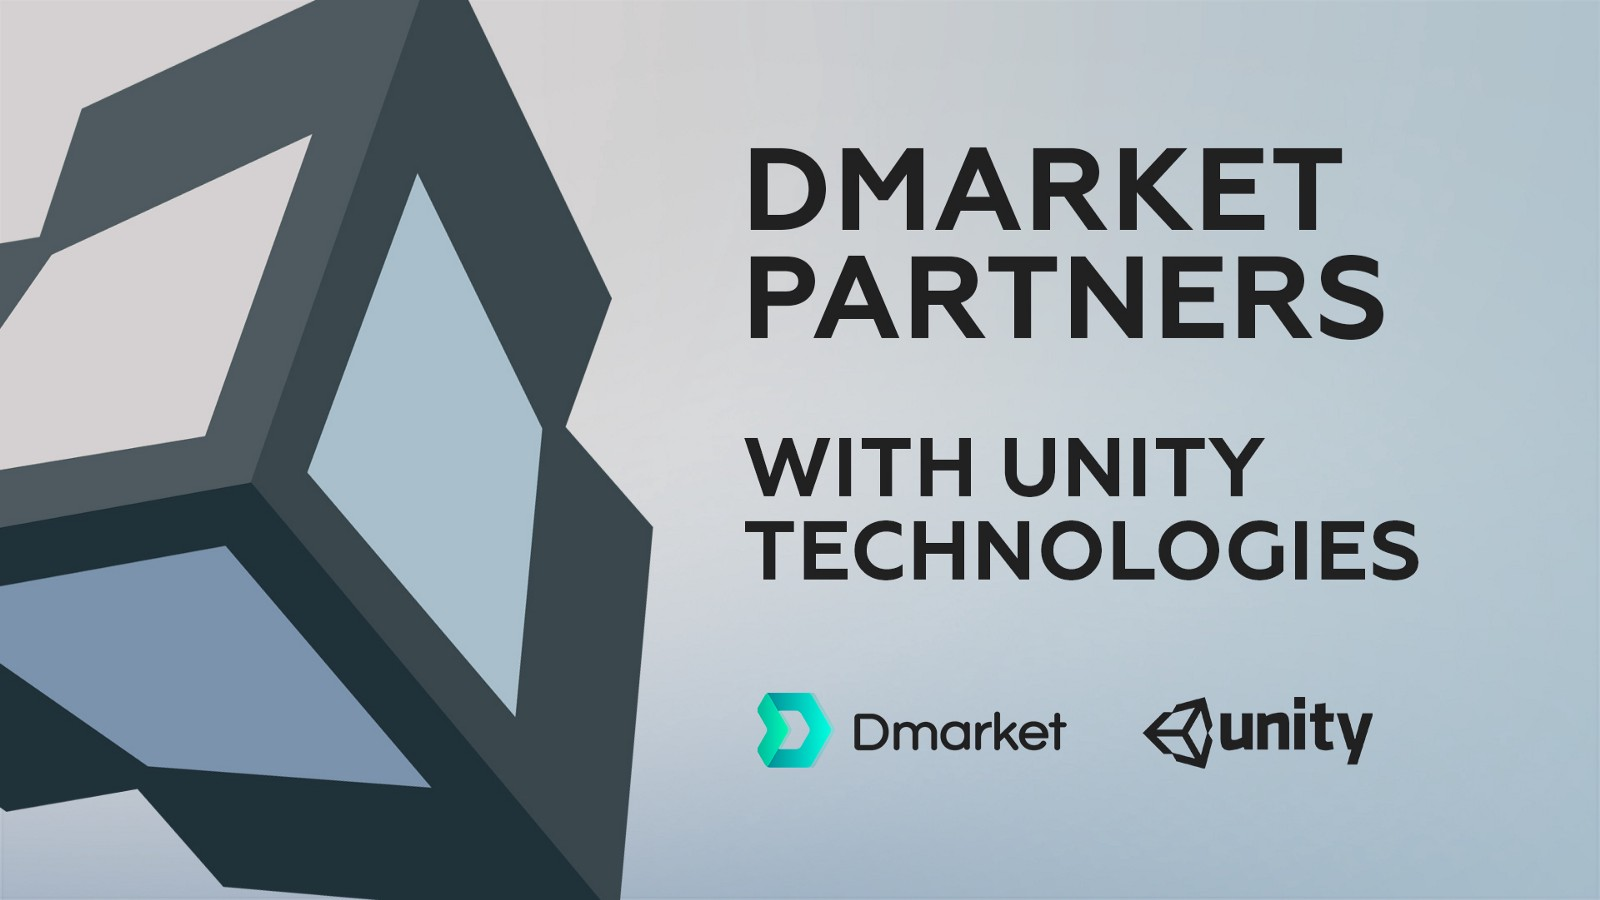 Dmarket partners with unity technologies the worlds most widely ca dmarket the worlds first blockchain based marketplace for trading in game items announced today a partnership with unity technologies 1betcityfo Gallery